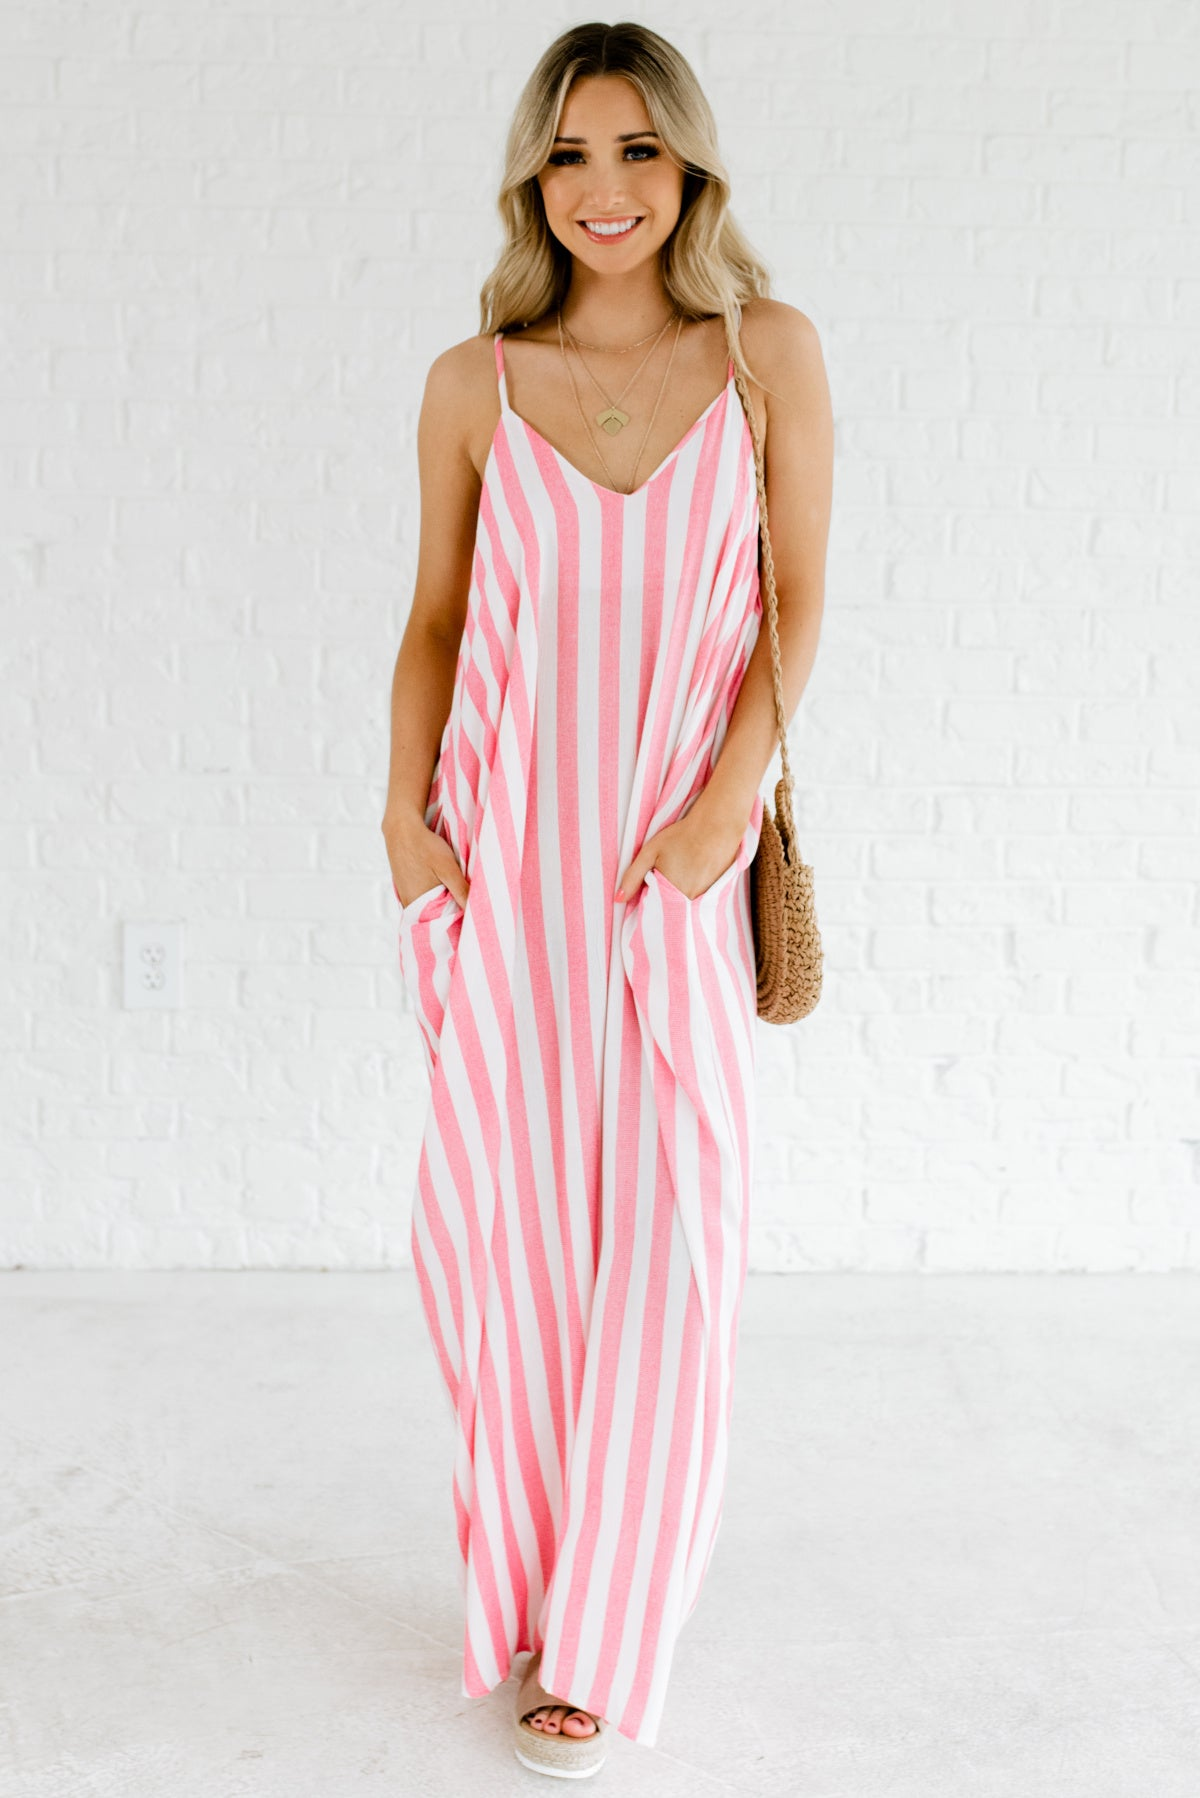 Red and White Striped Maxi Length Boutique Dresses for Women